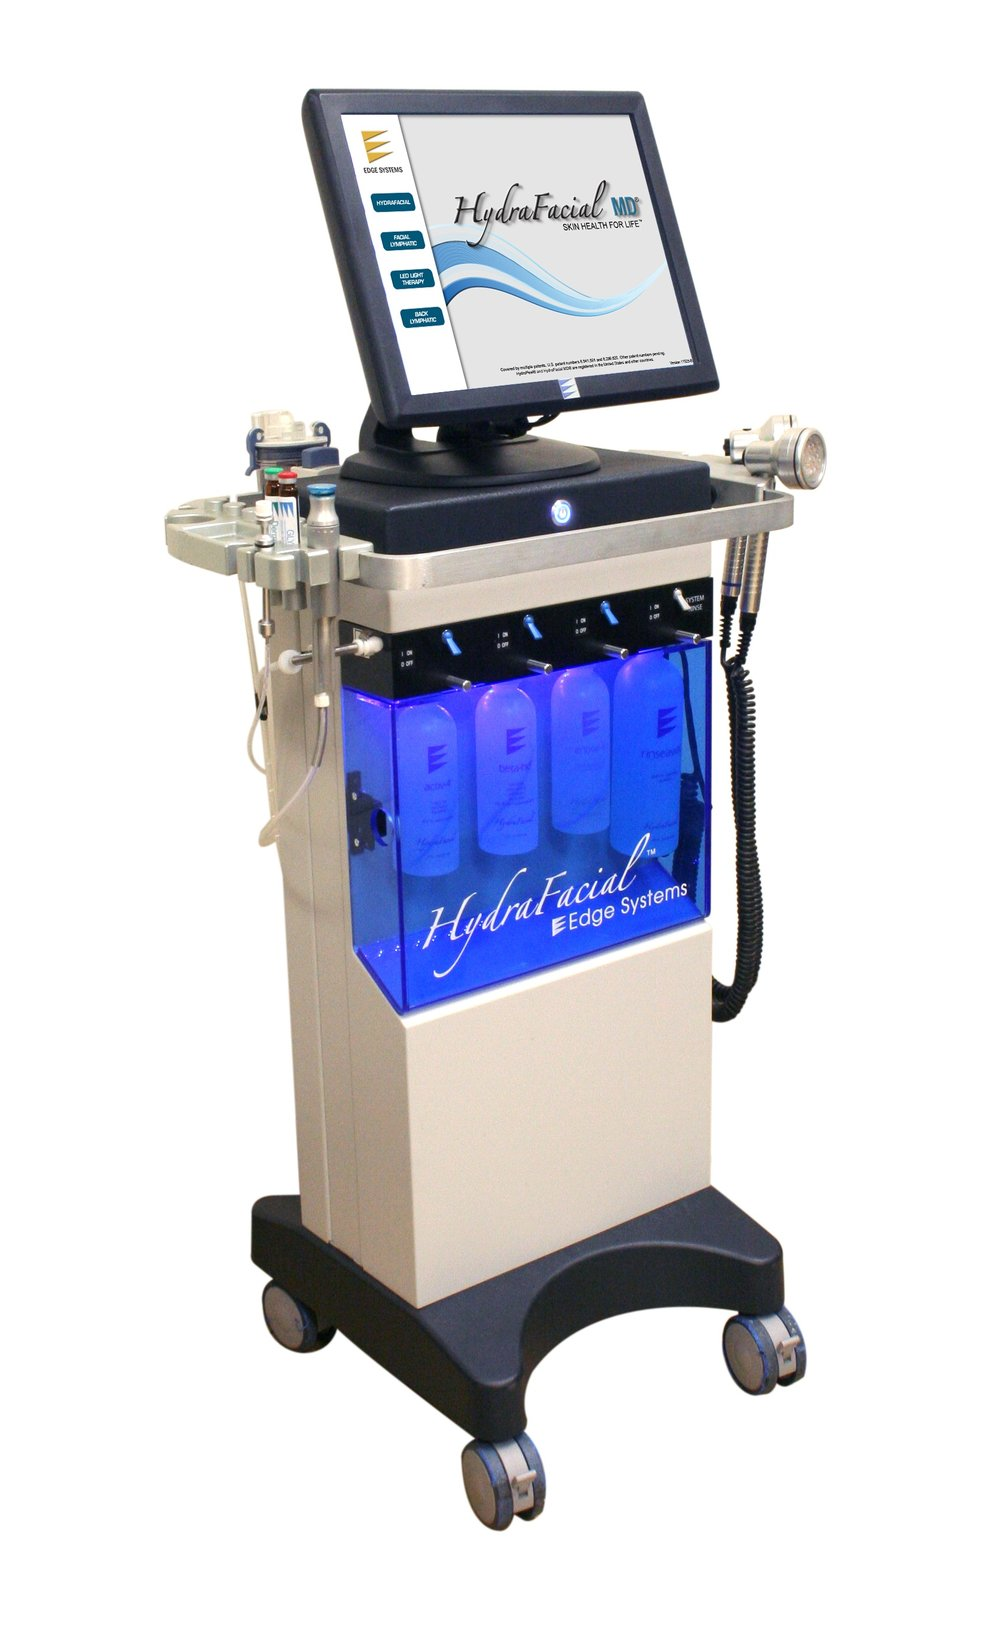 Apparently, the Vortex-Fusion® serum delivery system is what sets the HydraFacial apart from other procedures. The multi-step treatment cleanses, evenly exfoliates and extracts to remove impurities and dead skin cells while at the same time replenishing vital nutrients including Antioxidants, Peptides and Hyaluronic Acid. Thanks to the devices' superior delivery system, these performing ingredients are able to more effectively reduce the appearance of fine lines & wrinkles for results you can see and feel instantly.